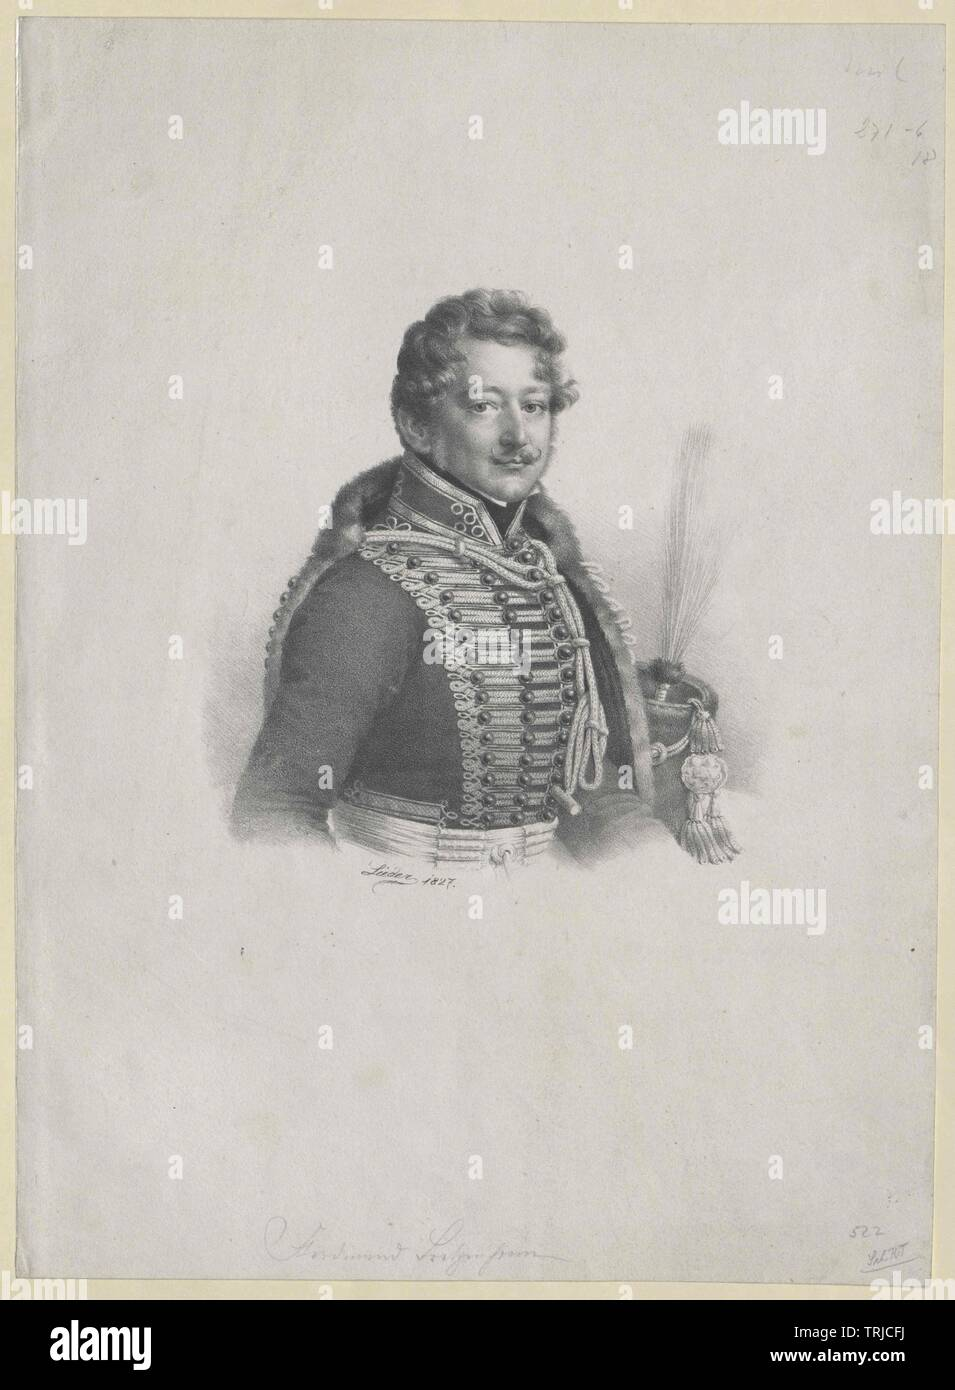 Bretzenheim-Regecz, Ferdinand count, Imperial and Royal secret counsel since 1824, member of the Pressburg Diet, Additional-Rights-Clearance-Info-Not-Available - Stock Image